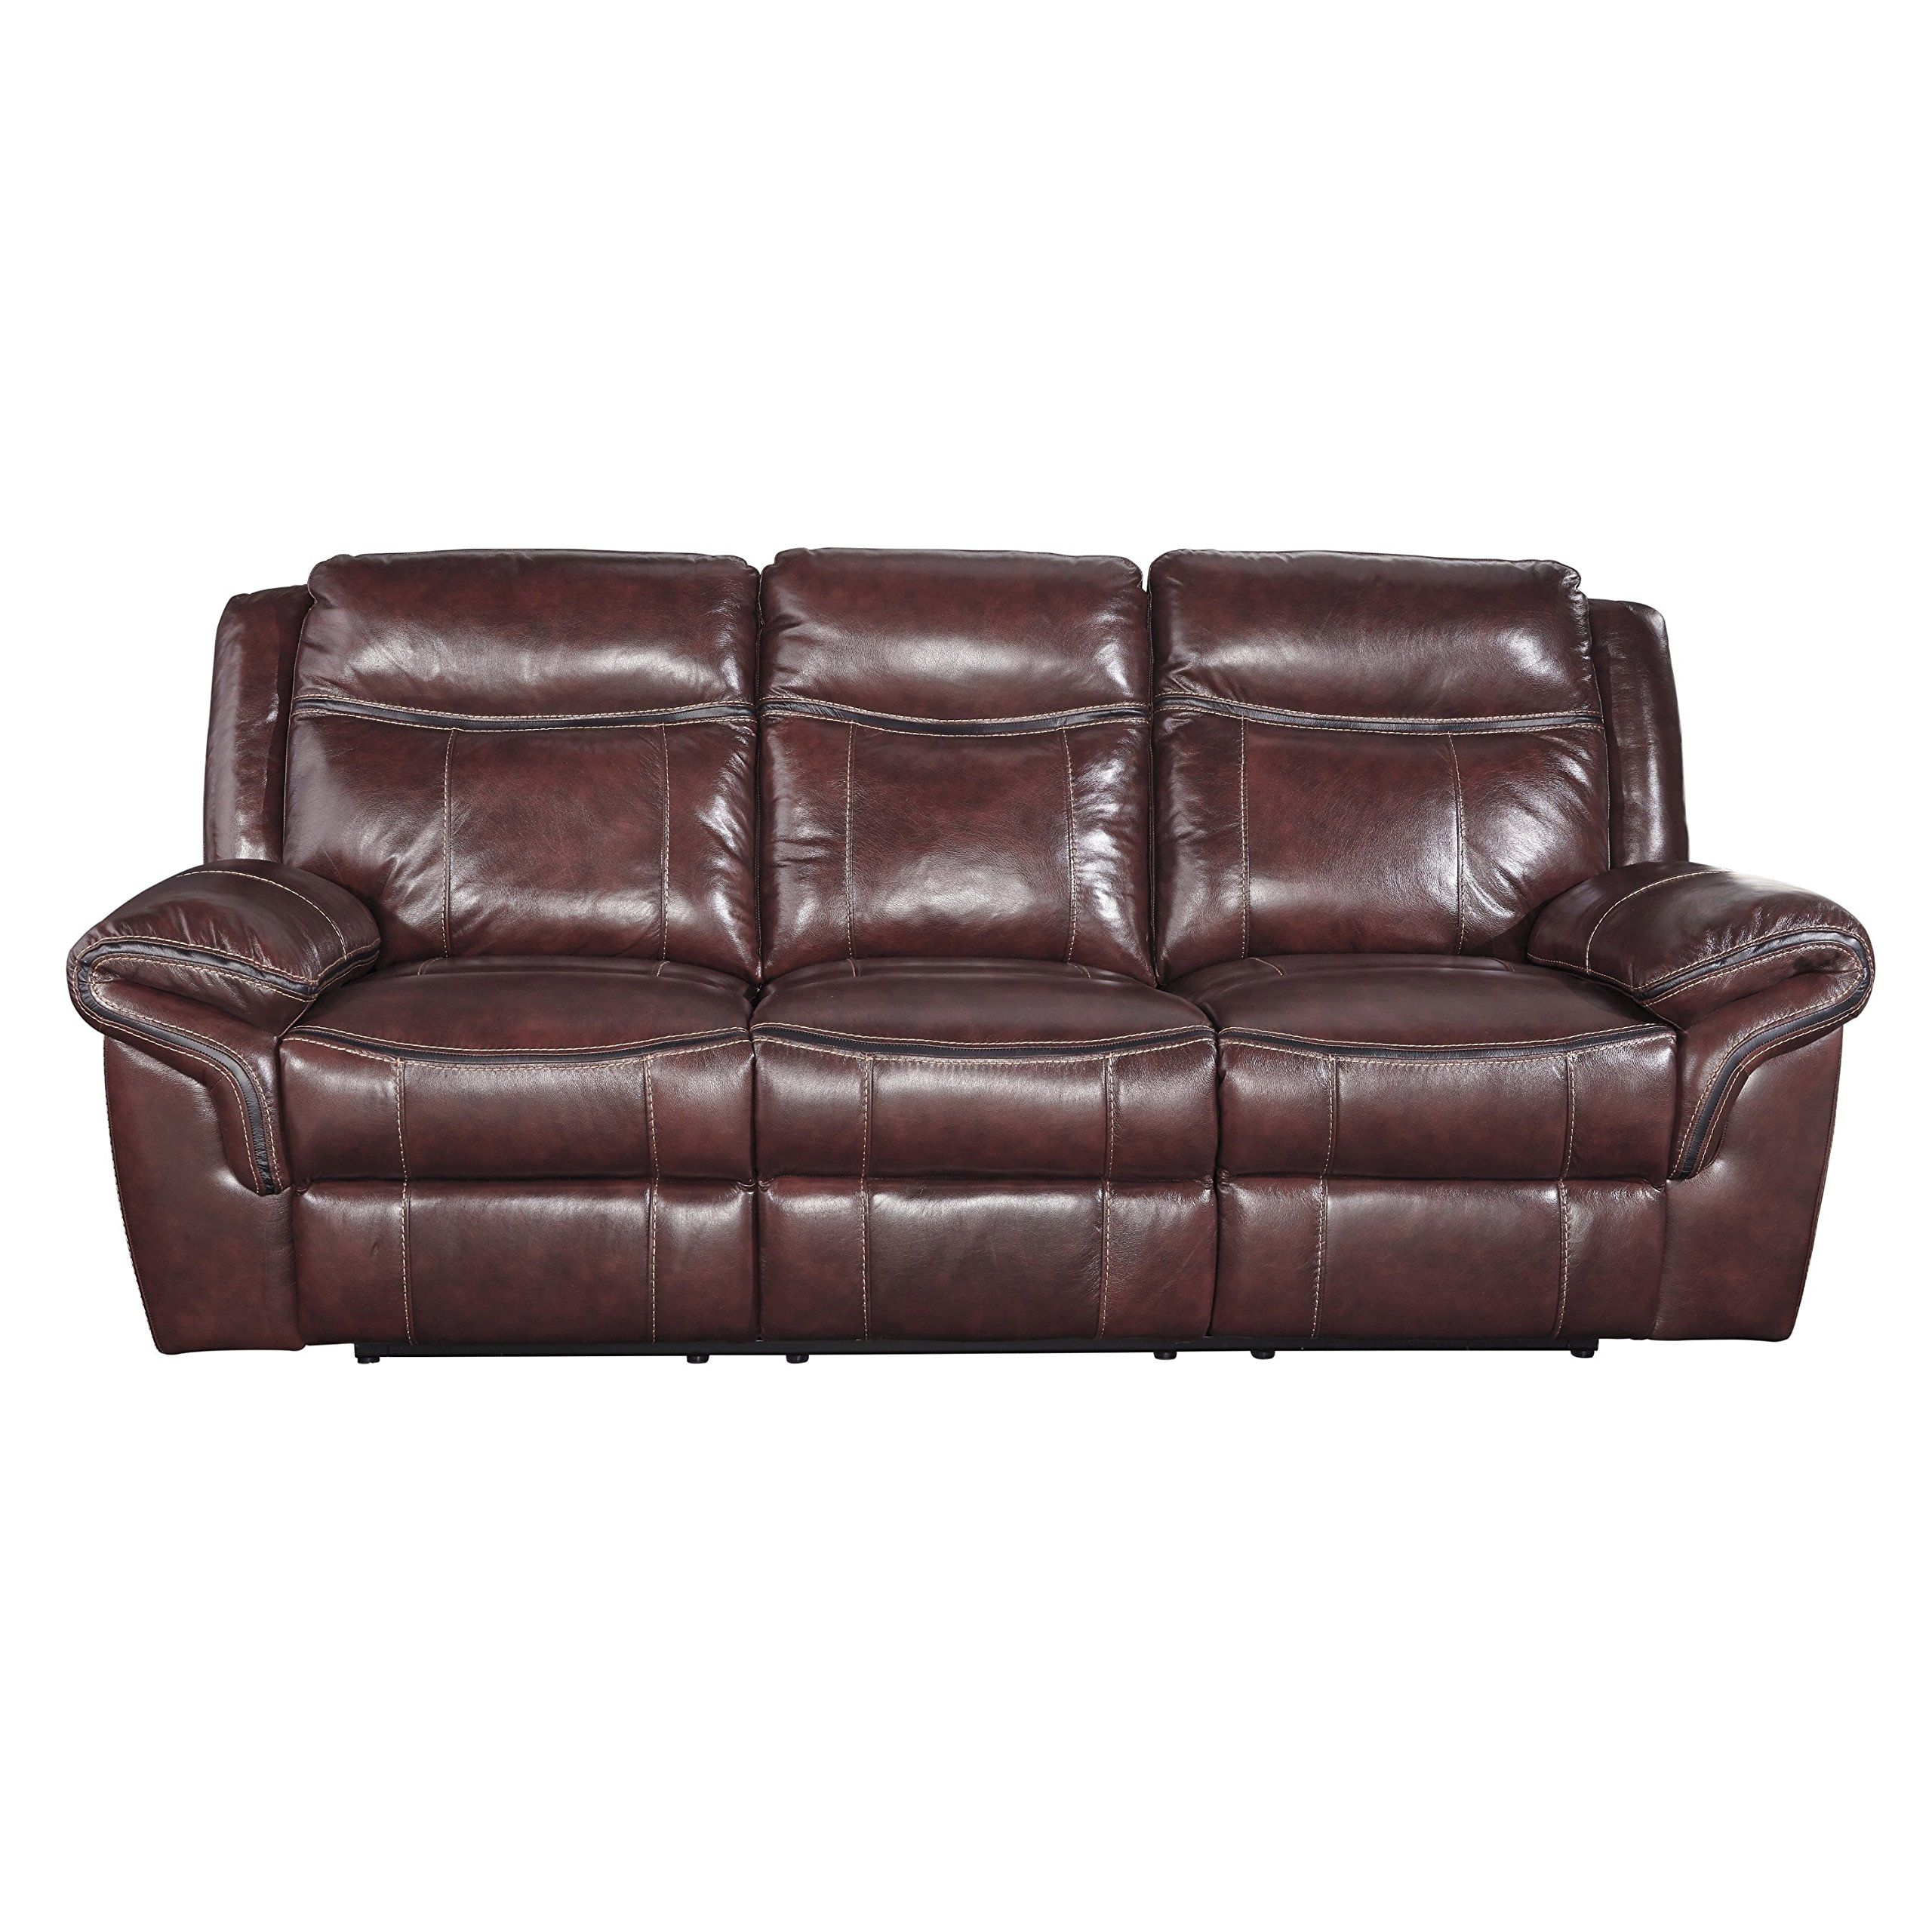 reclining furniture leather interior and rocker sofa loveseat ashley recliner